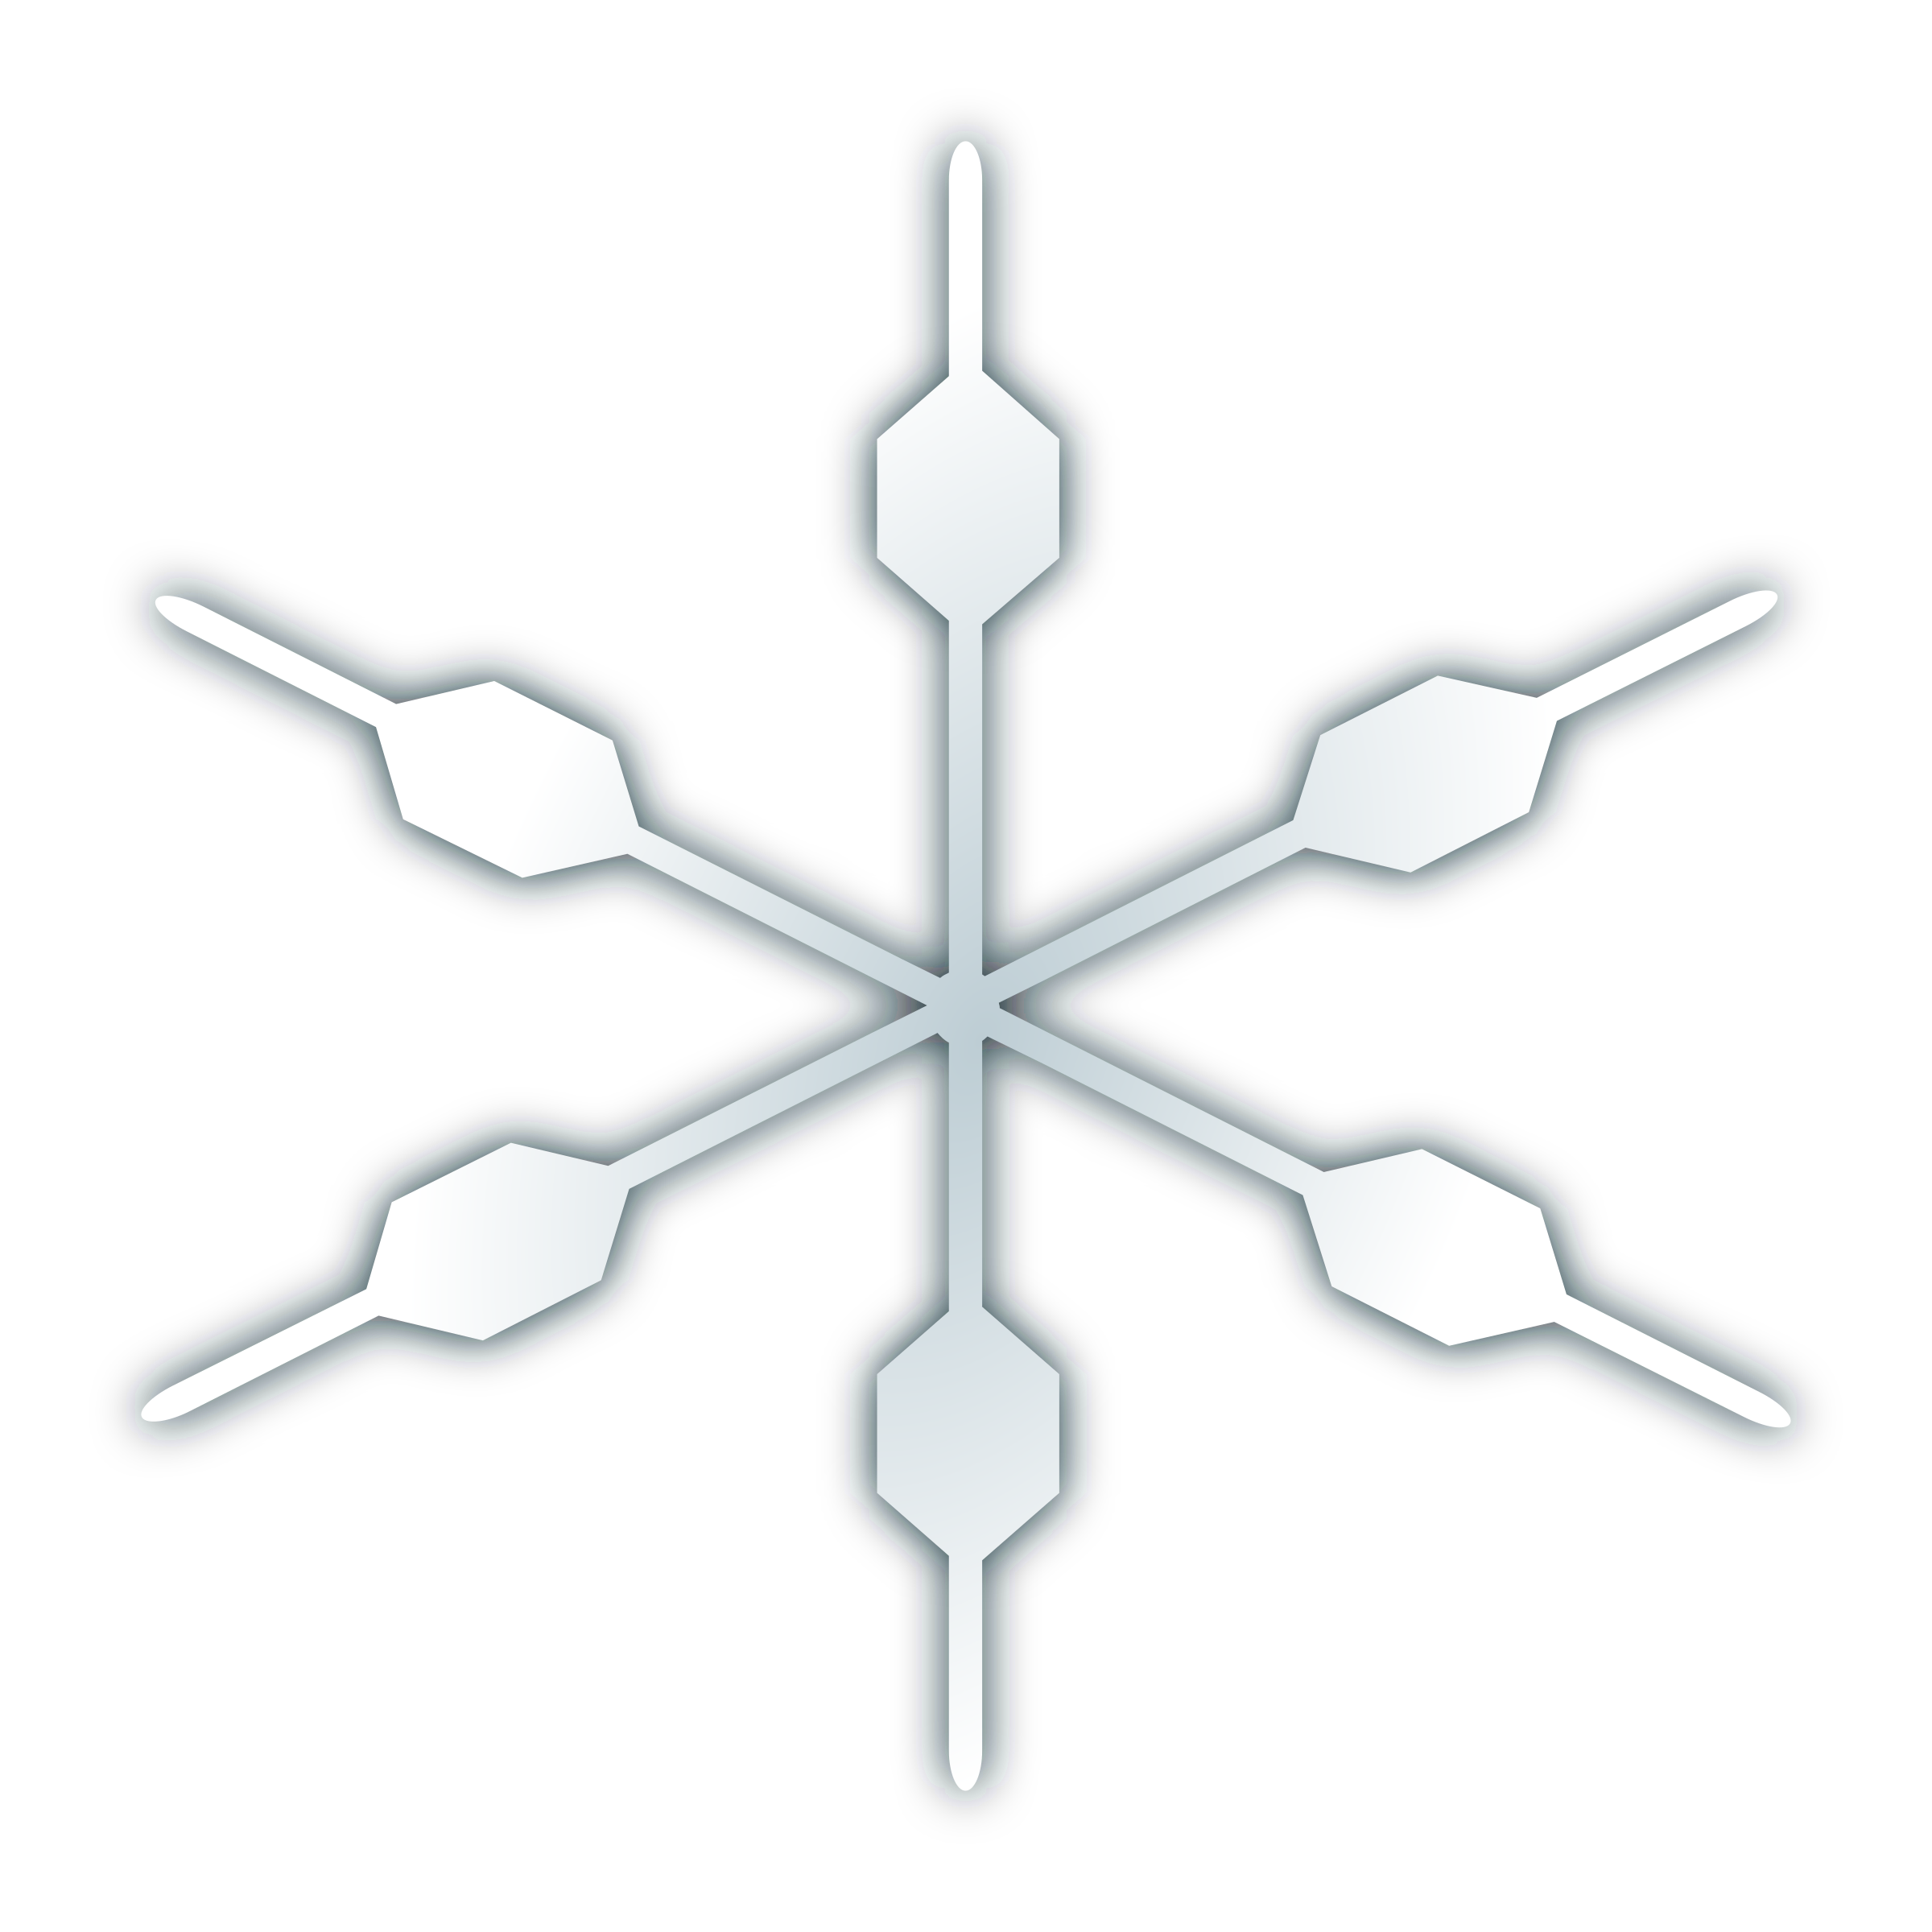 snow flake icon by netalloy